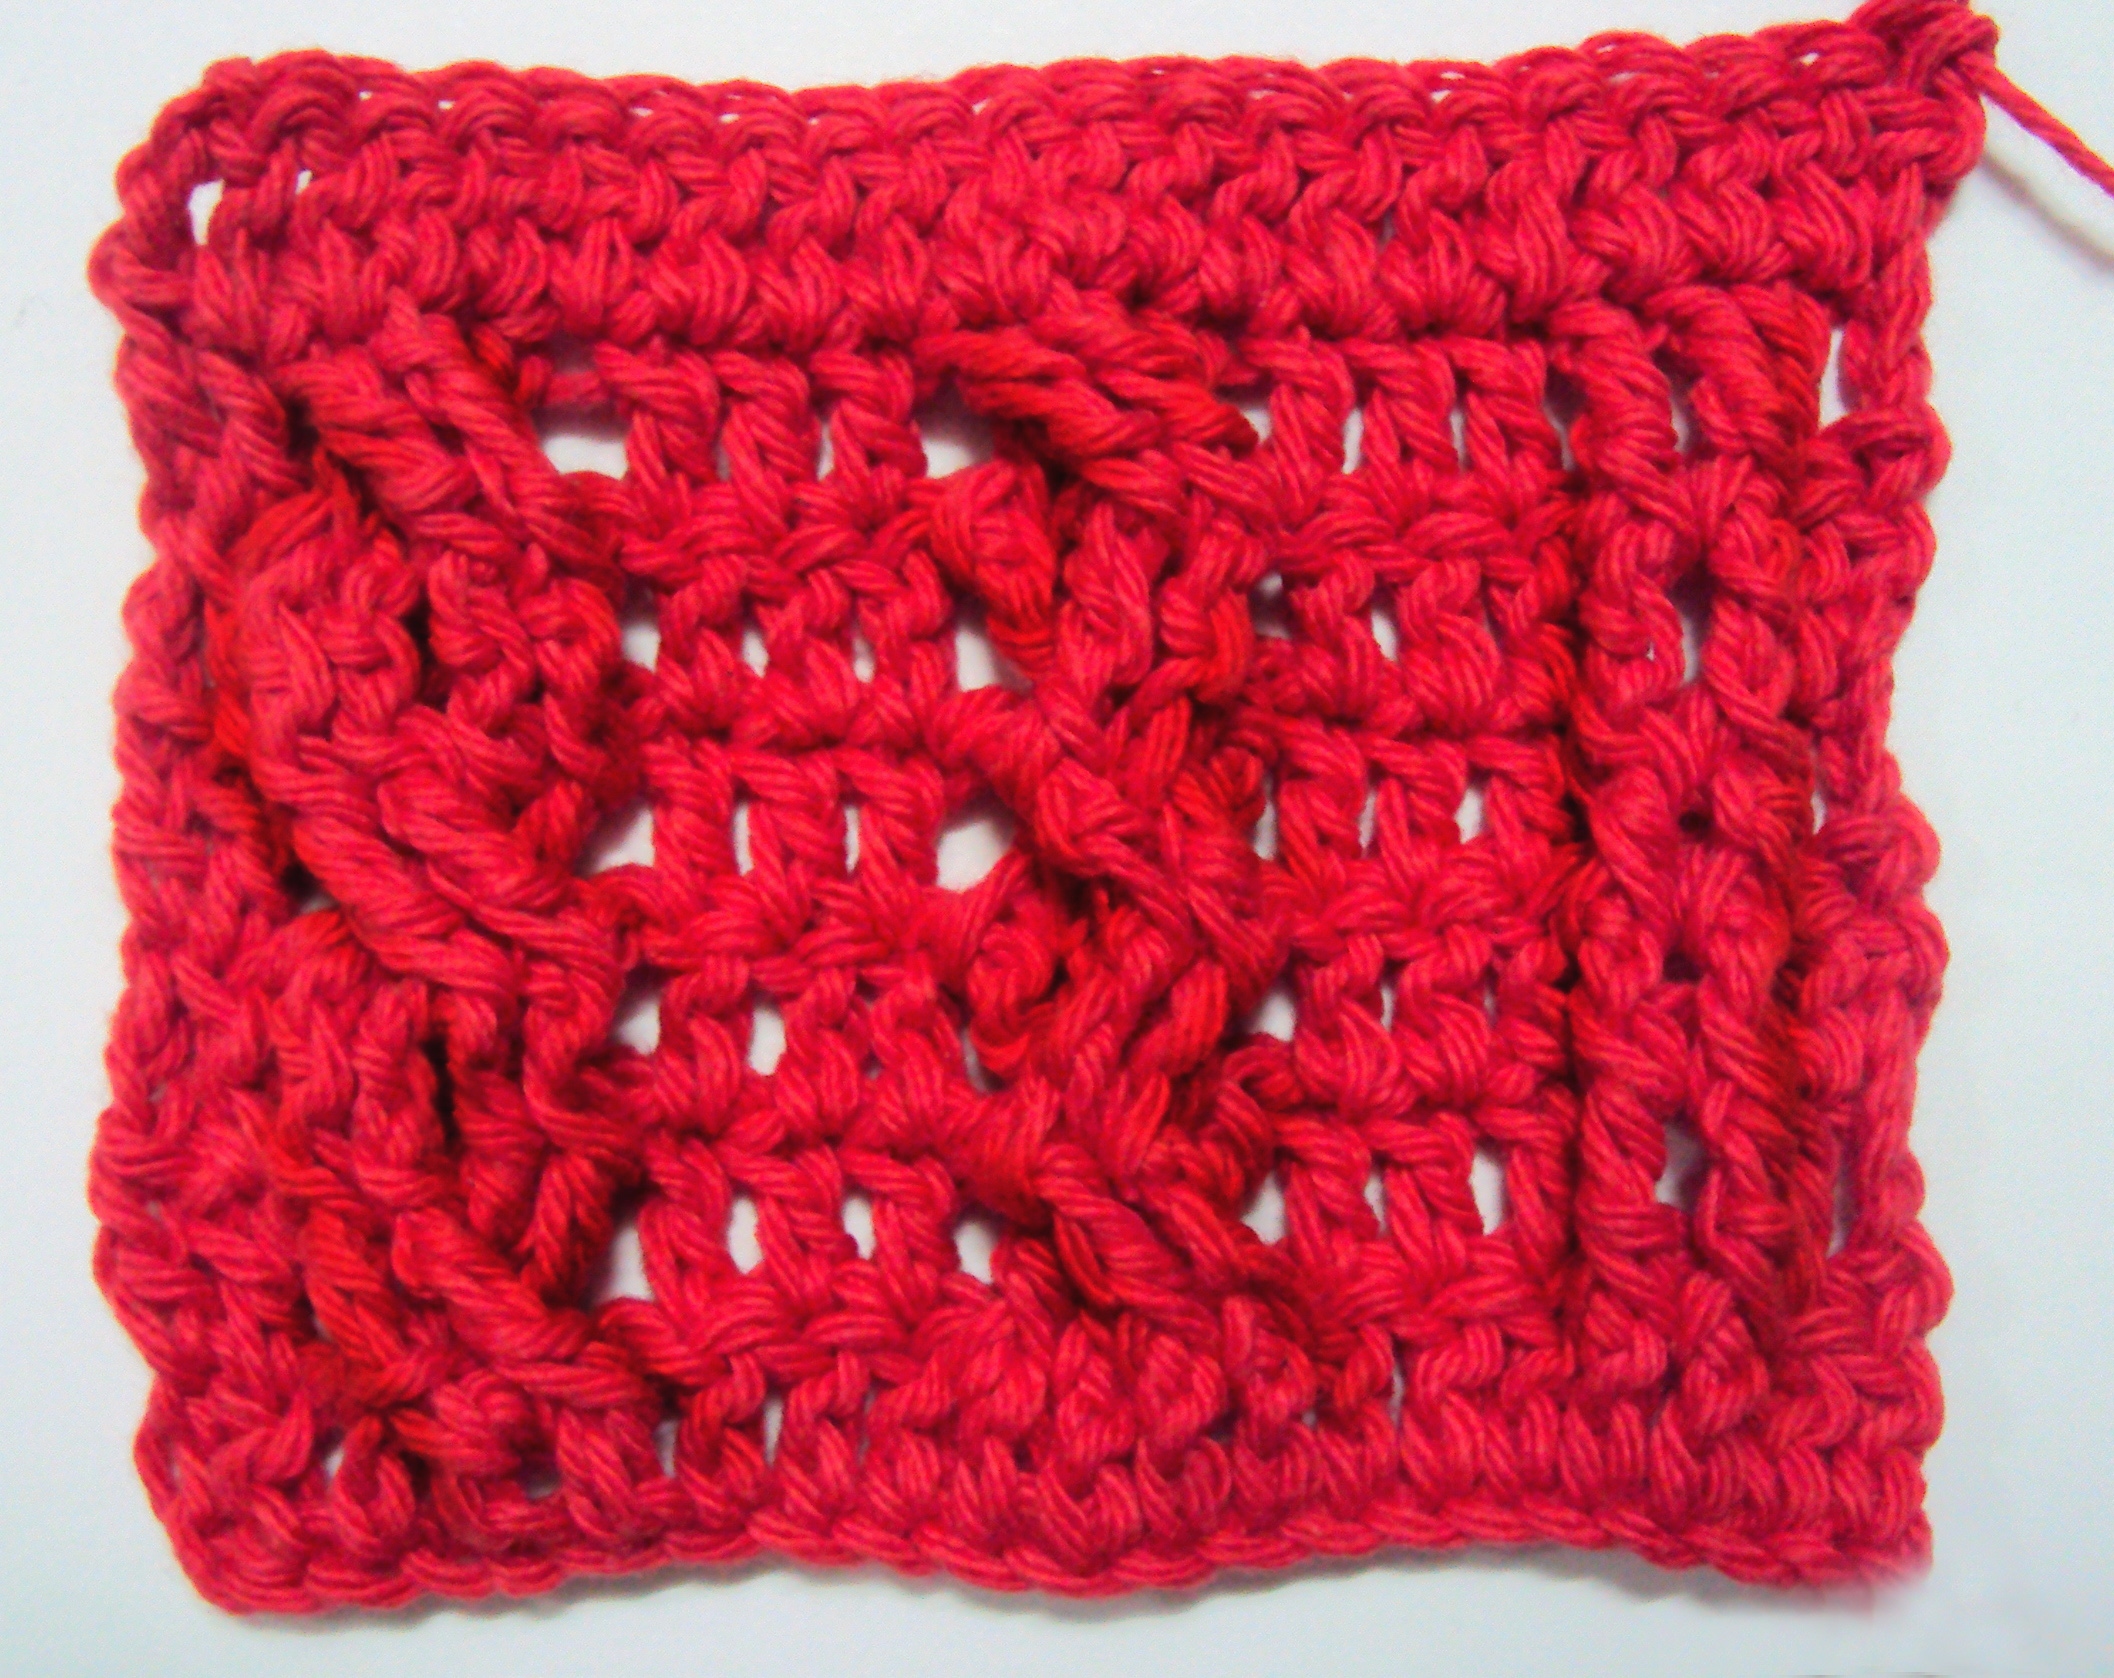 What Is Crochet : Crochet Stitches How to crochet: cable stitches